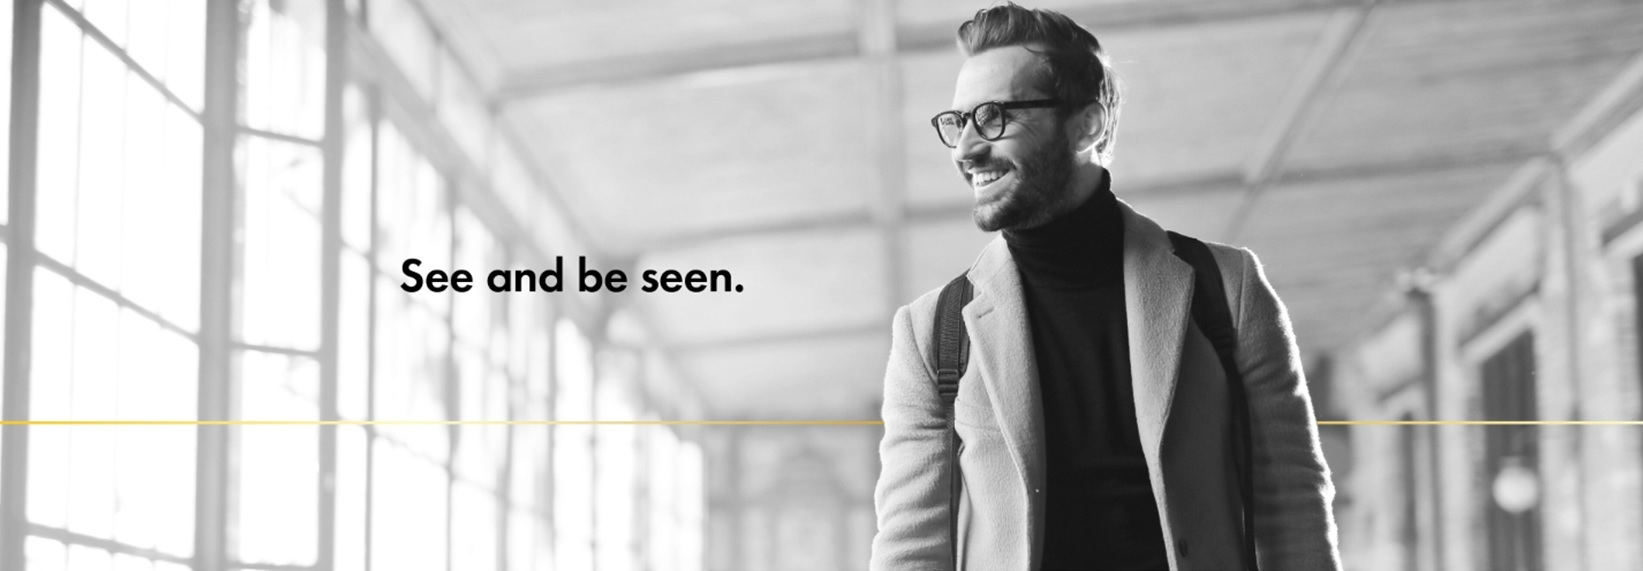 See and be seen campaign